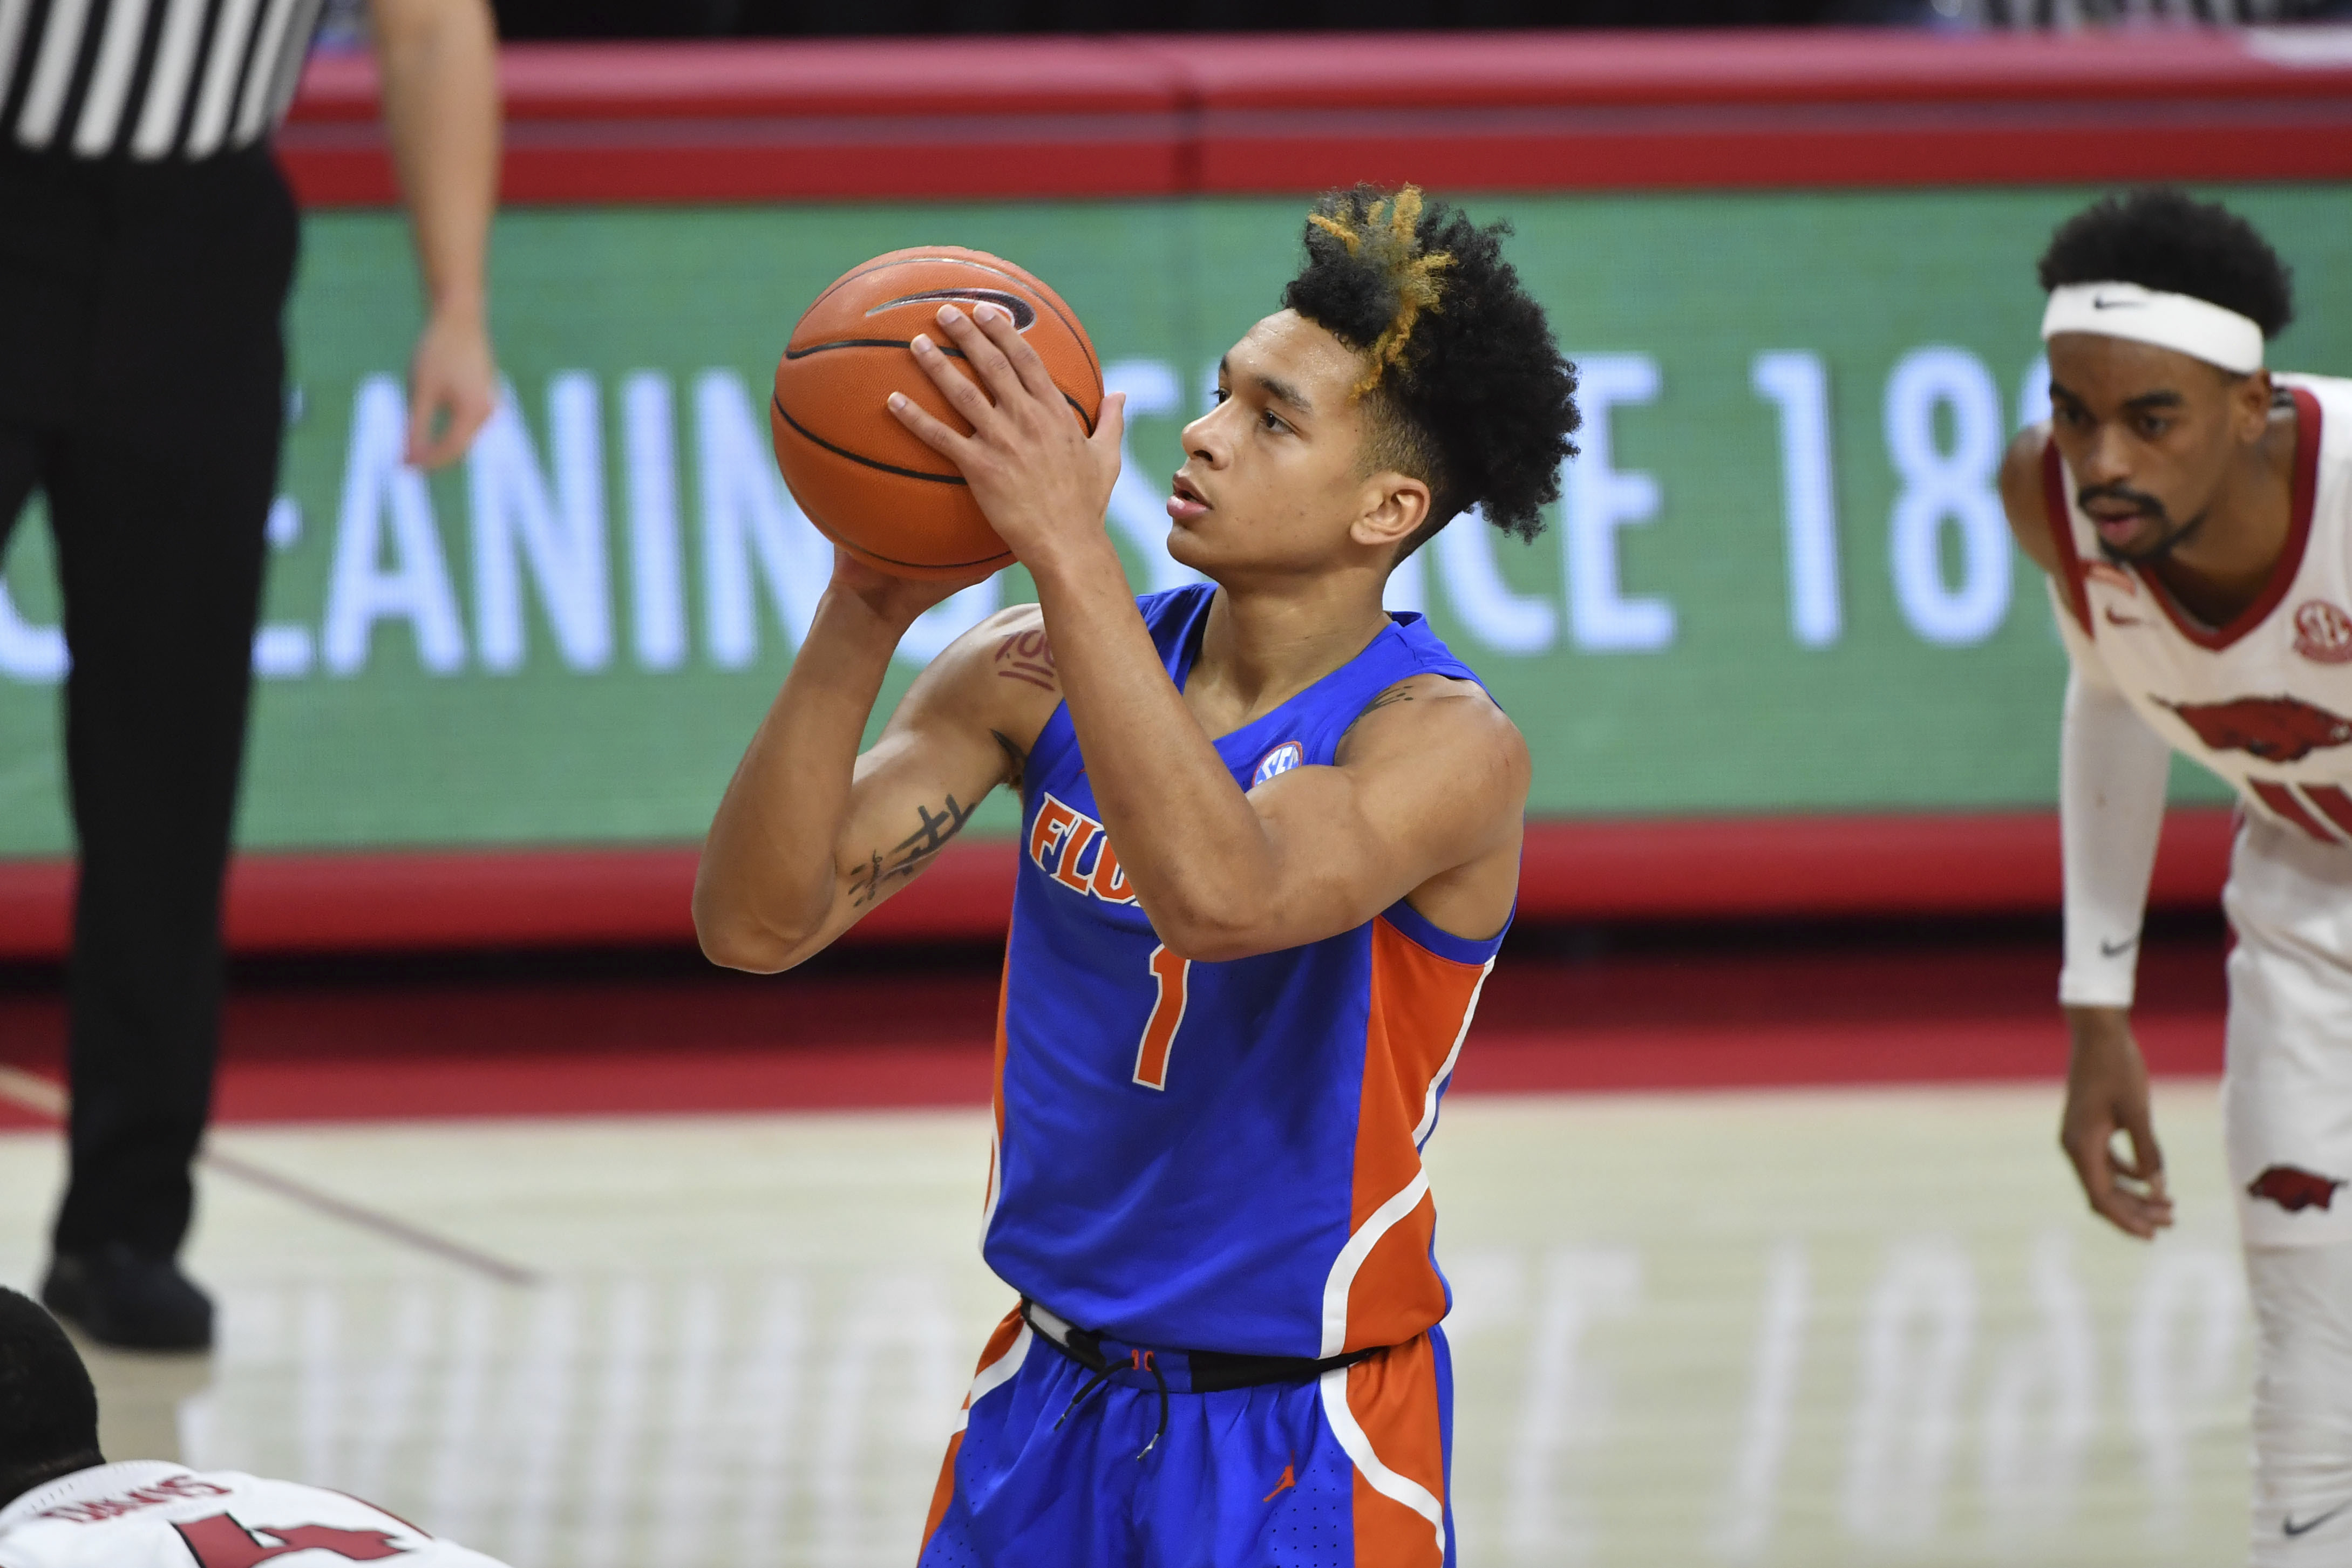 Florida guard Tre Mann (1) shoots a free throw against Arkansas during the second half of an NCAA college basketball game in Fayetteville, Ark. Tuesday, Feb. 16, 2021.